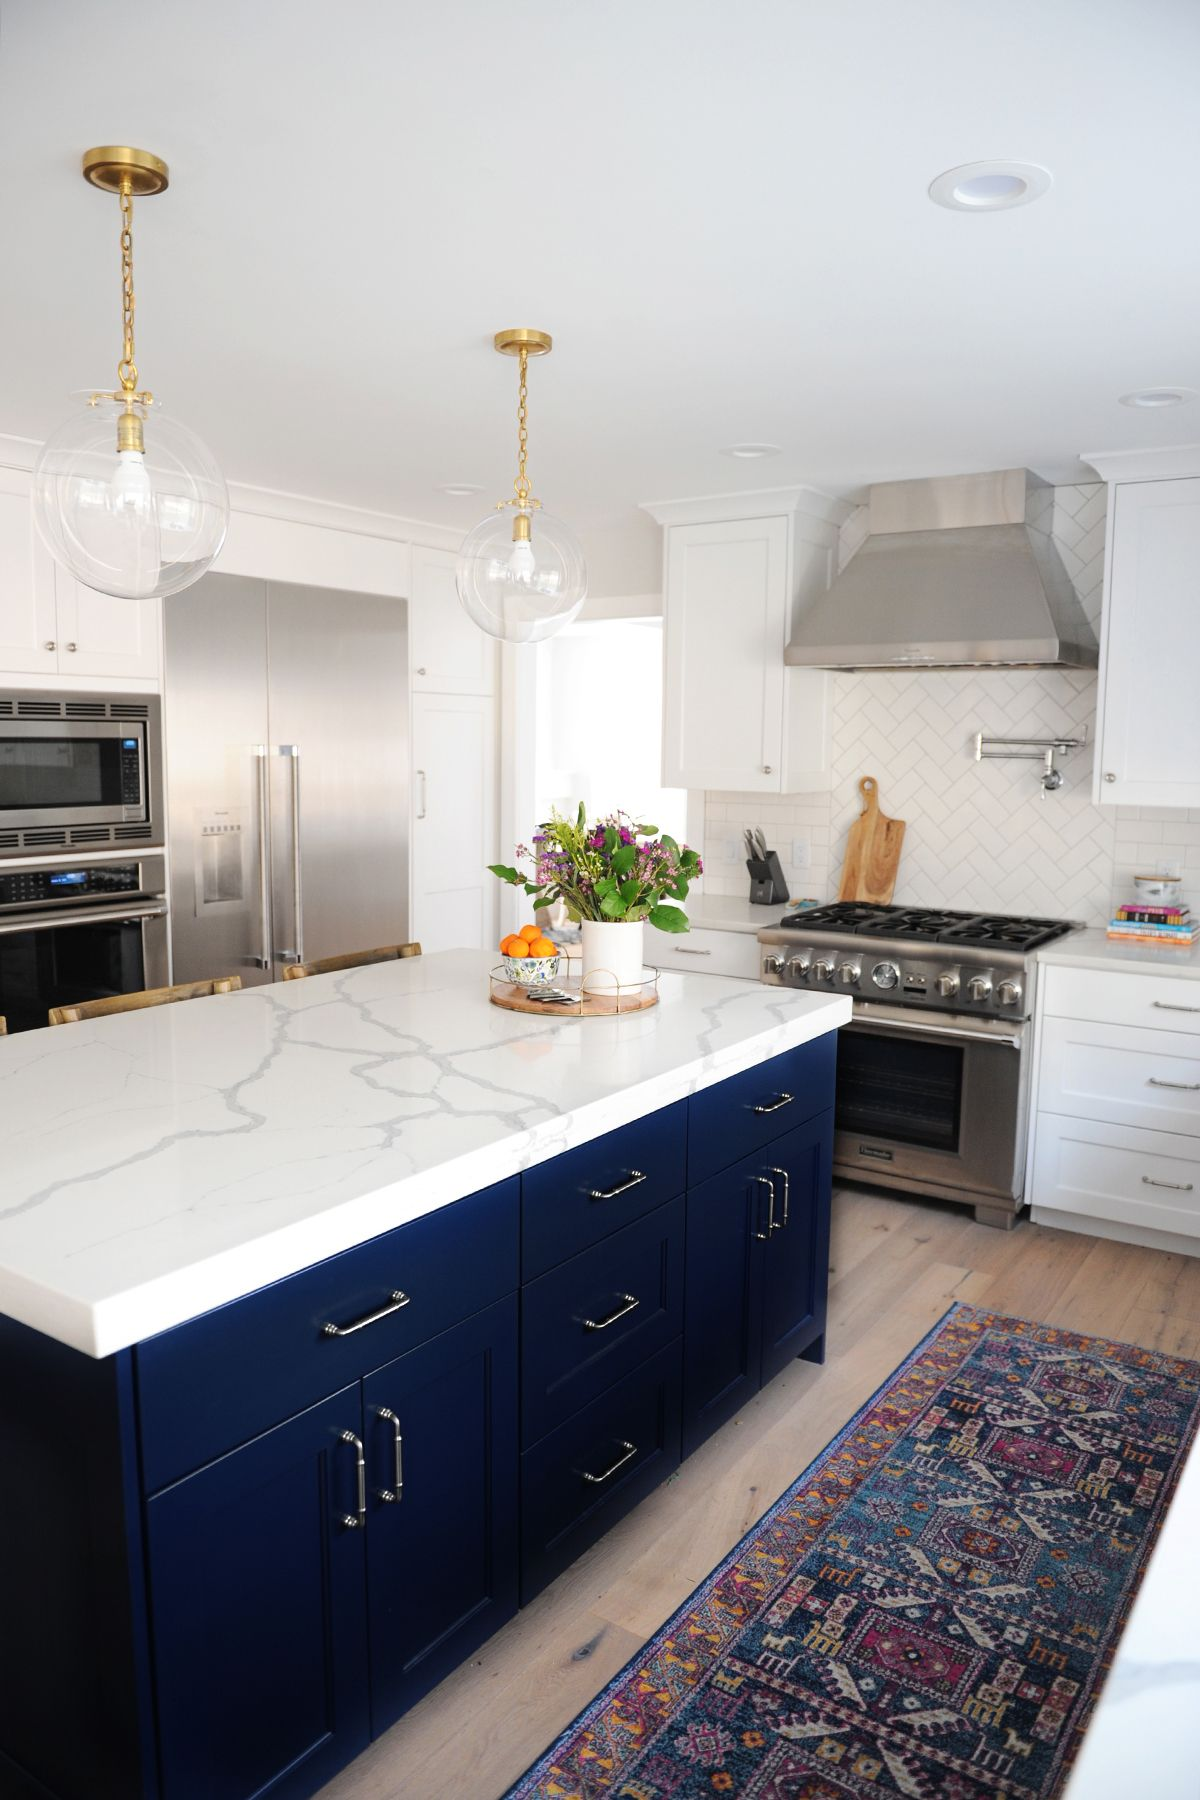 Spring Home Decor Tour: Our Spring Kitchen | Kitchens, Spring and House